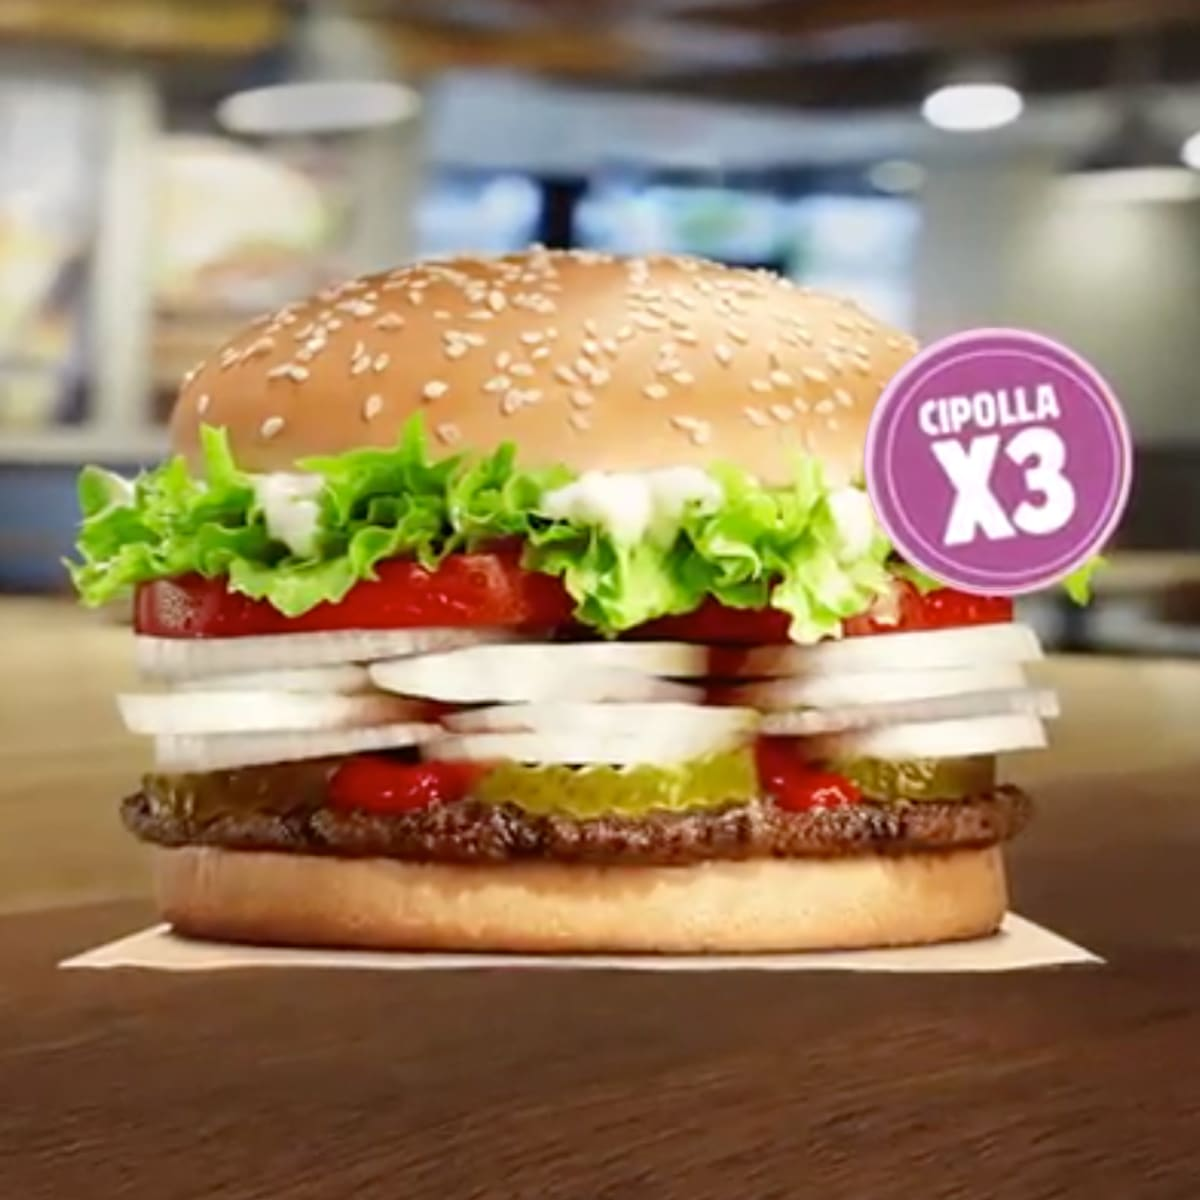 Burger King Whopper on wooden table